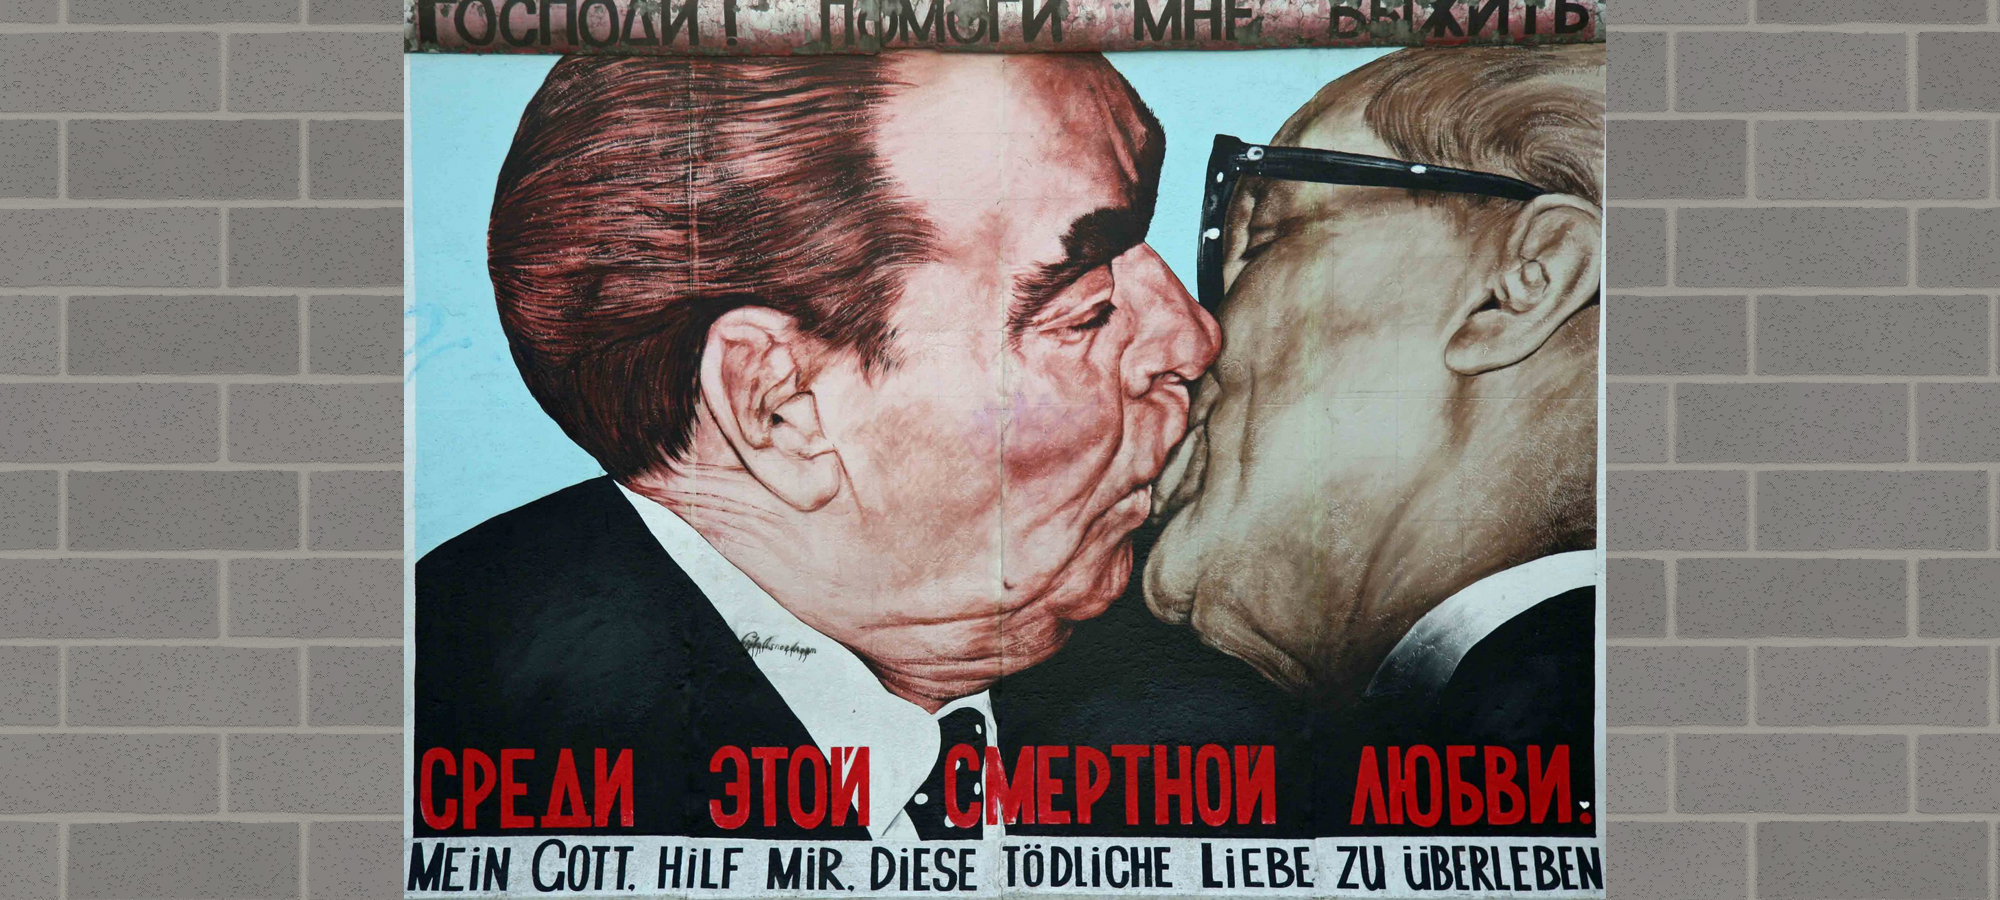 Art From An Evil Canvas: The Berlin Wall Part 71